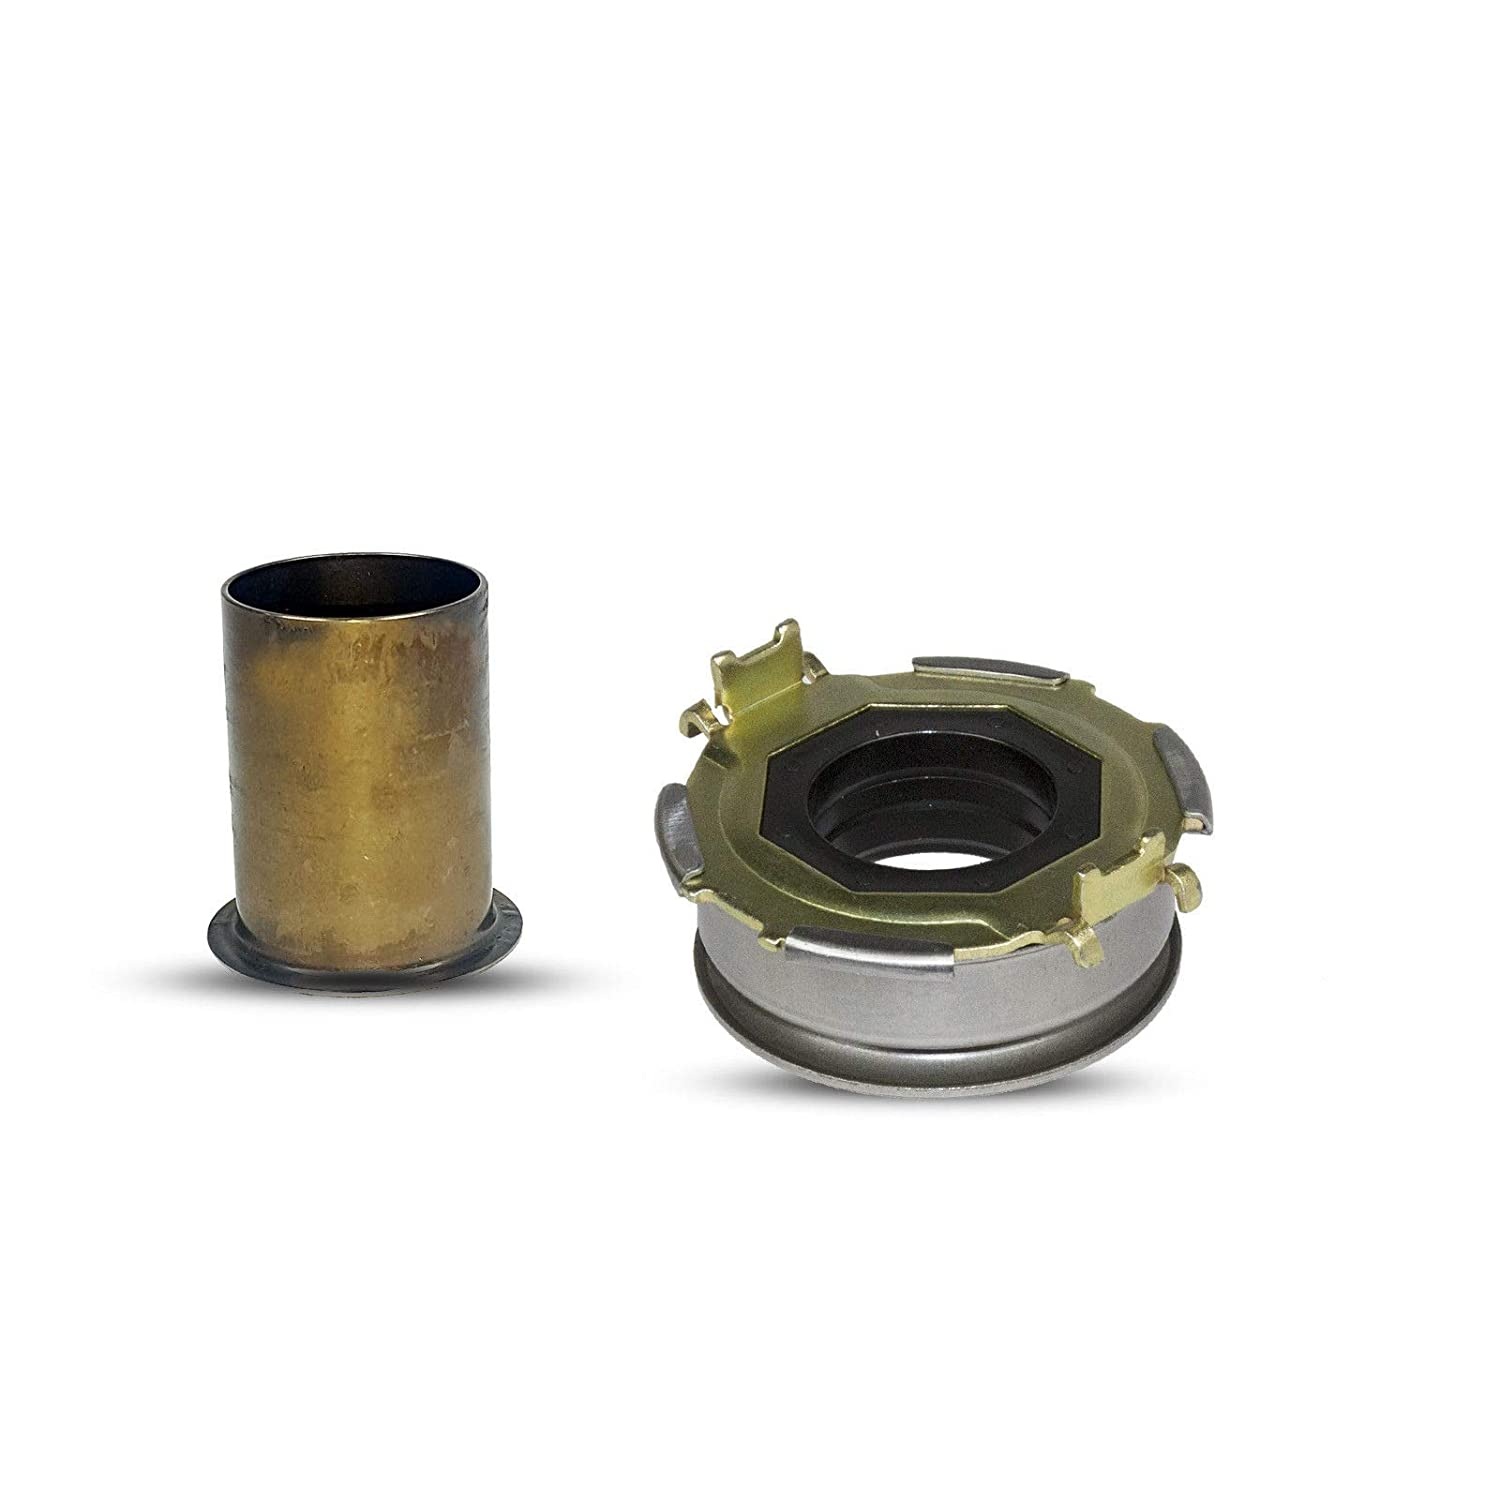 Release Bearing with Sleeve Repair Kit Works With Subaru Impreza Forester Base I Limited Sport Premium Touring Limited X Xs Xsl Xt WRX Sti 1996-2014 2.0L H4 2.5L H4 3.0L H6 Southeast Clutch